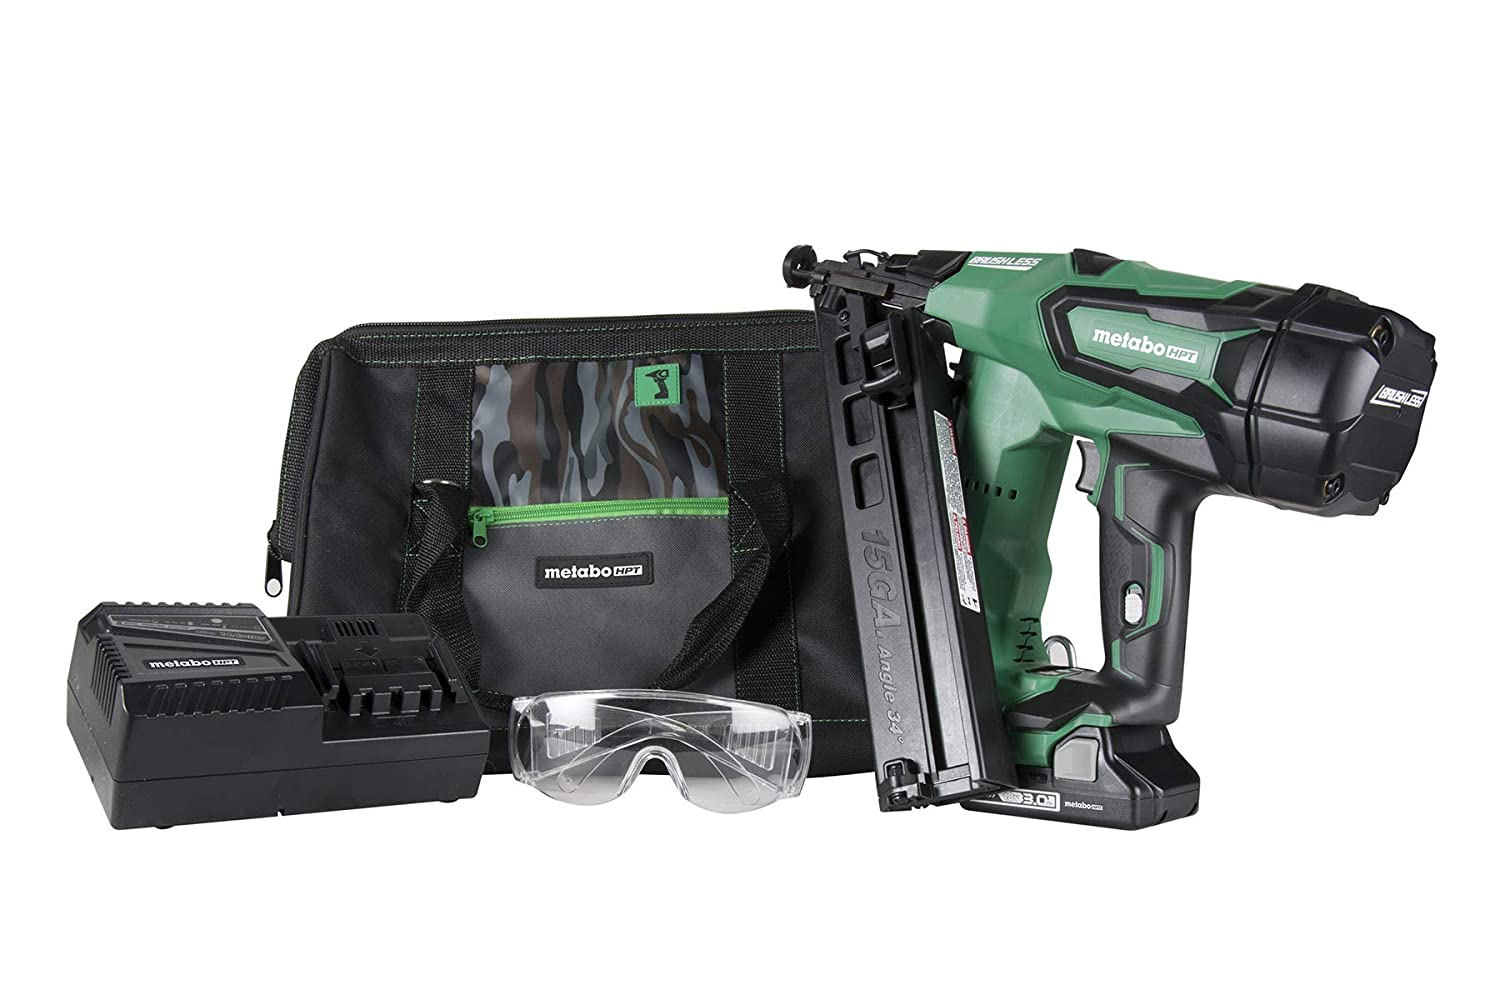 15-Gauge Metabo HPT NT1865DMA 18V Cordless Angled Finish Nailer Kit 1-1//4-Inch up to 2-1//2-Inch Finish Nails Brushless Motor Lifetime Tool Warranty Compact 3.0 Ah Lithium Ion Battery